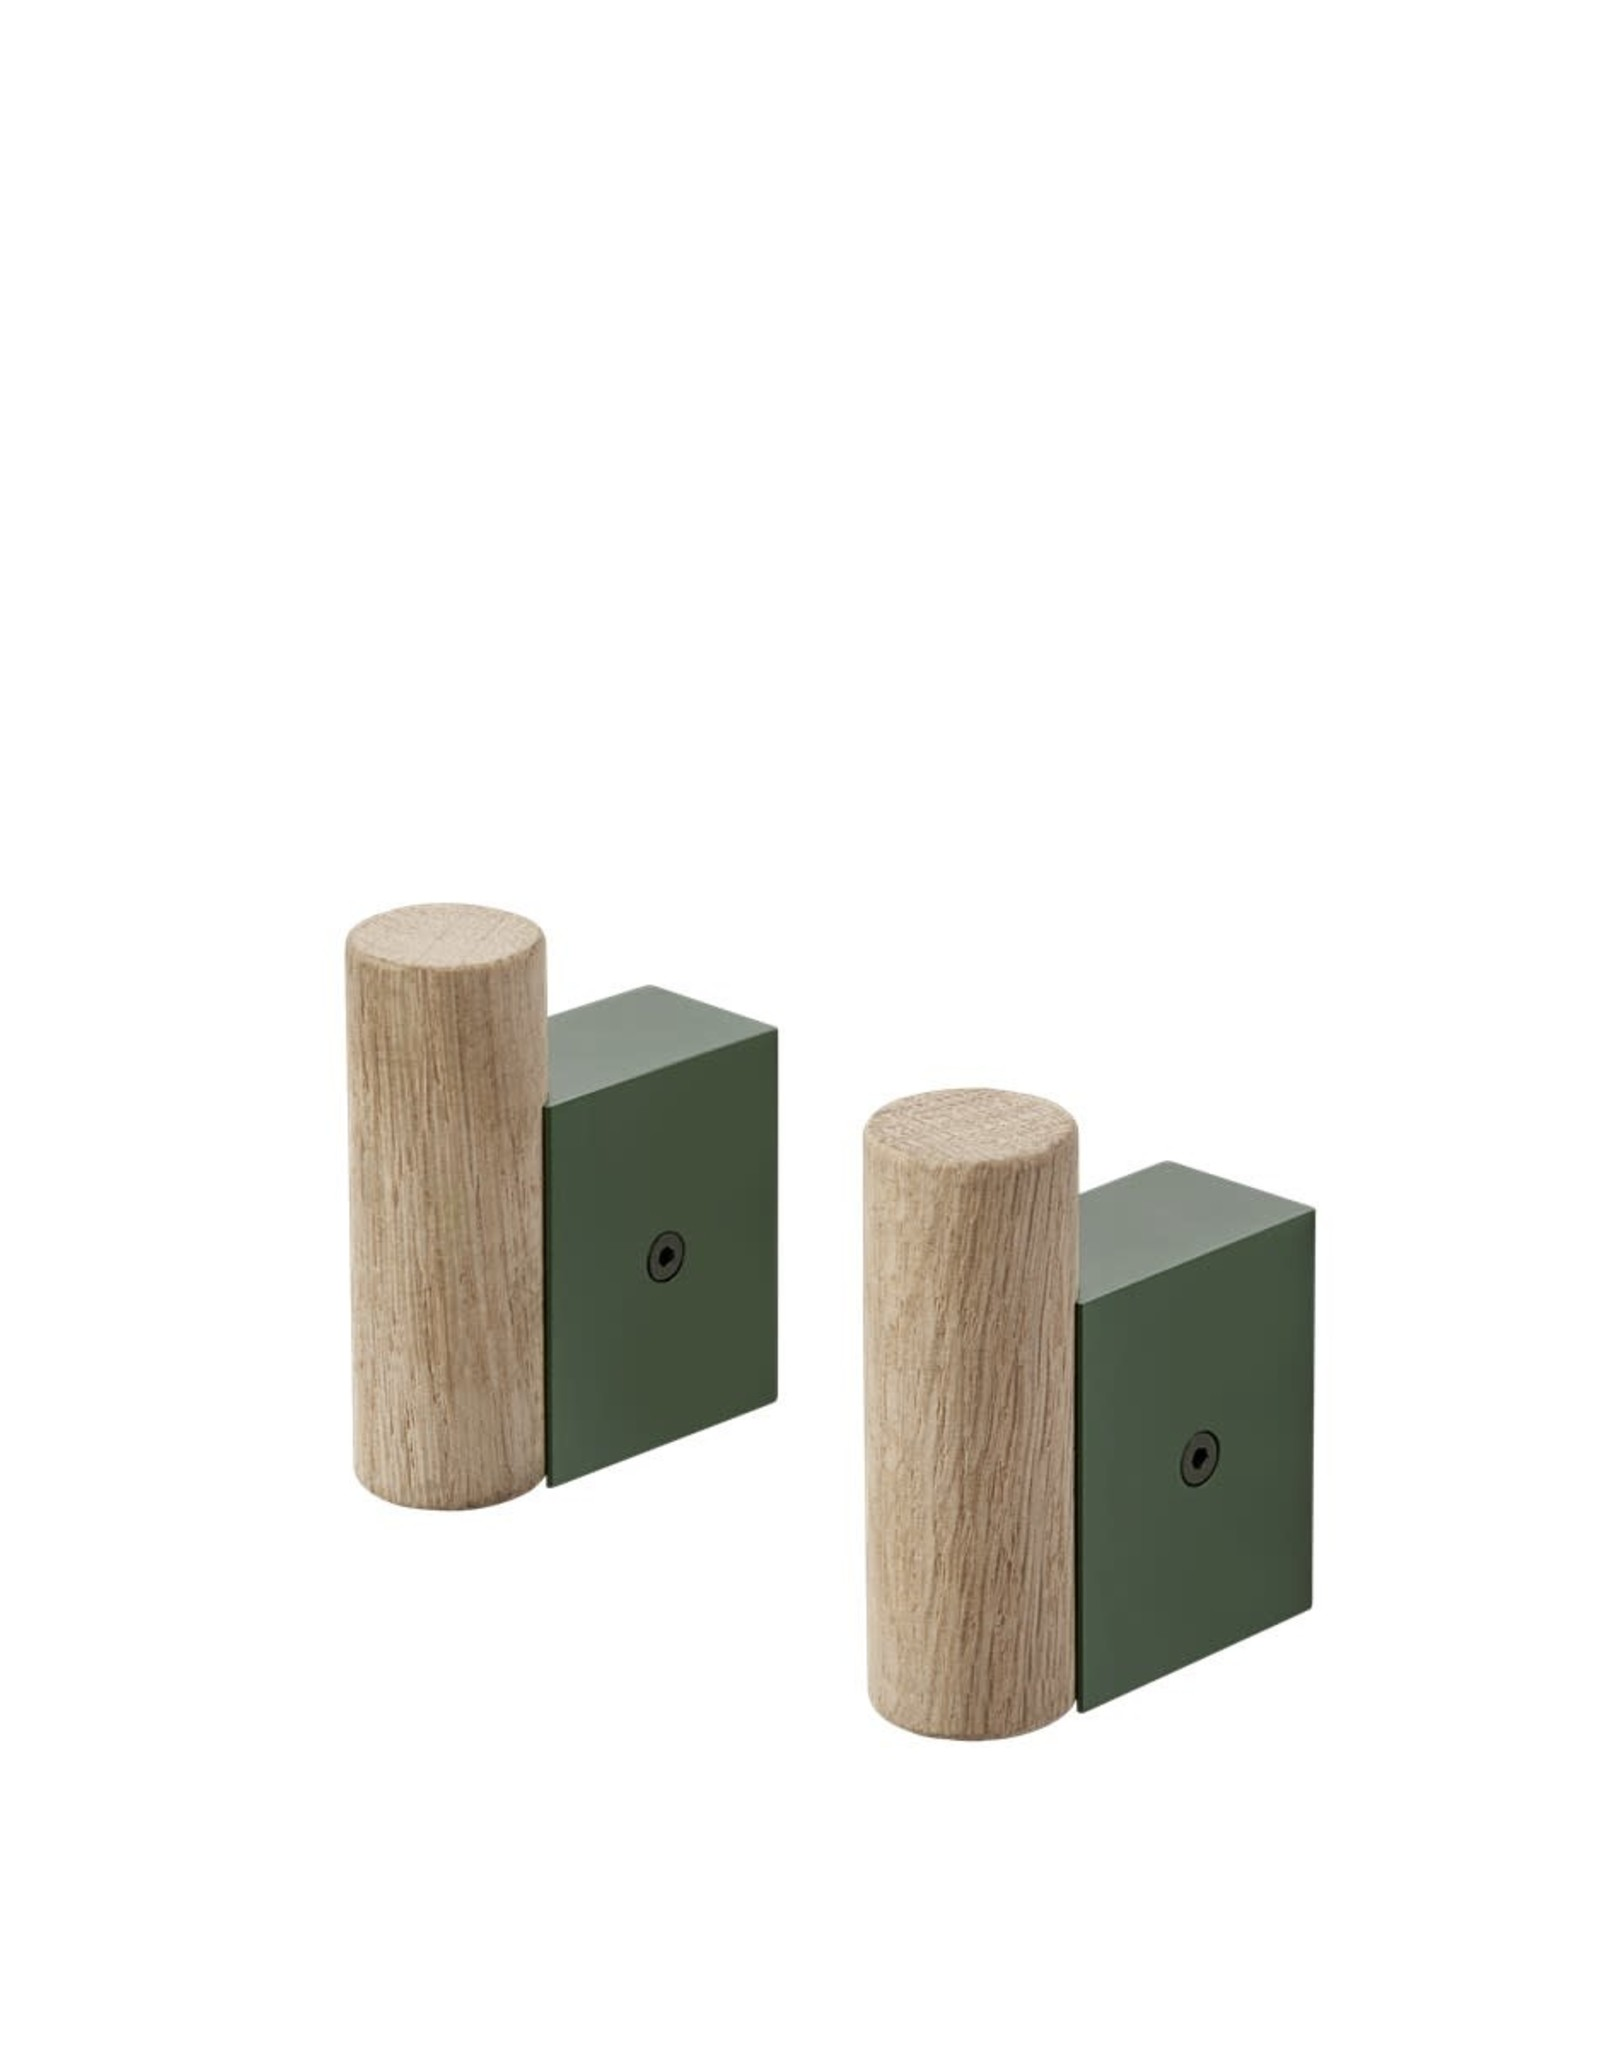 Muuto Muuto Attach Coat Hook s/2 oak/dark green